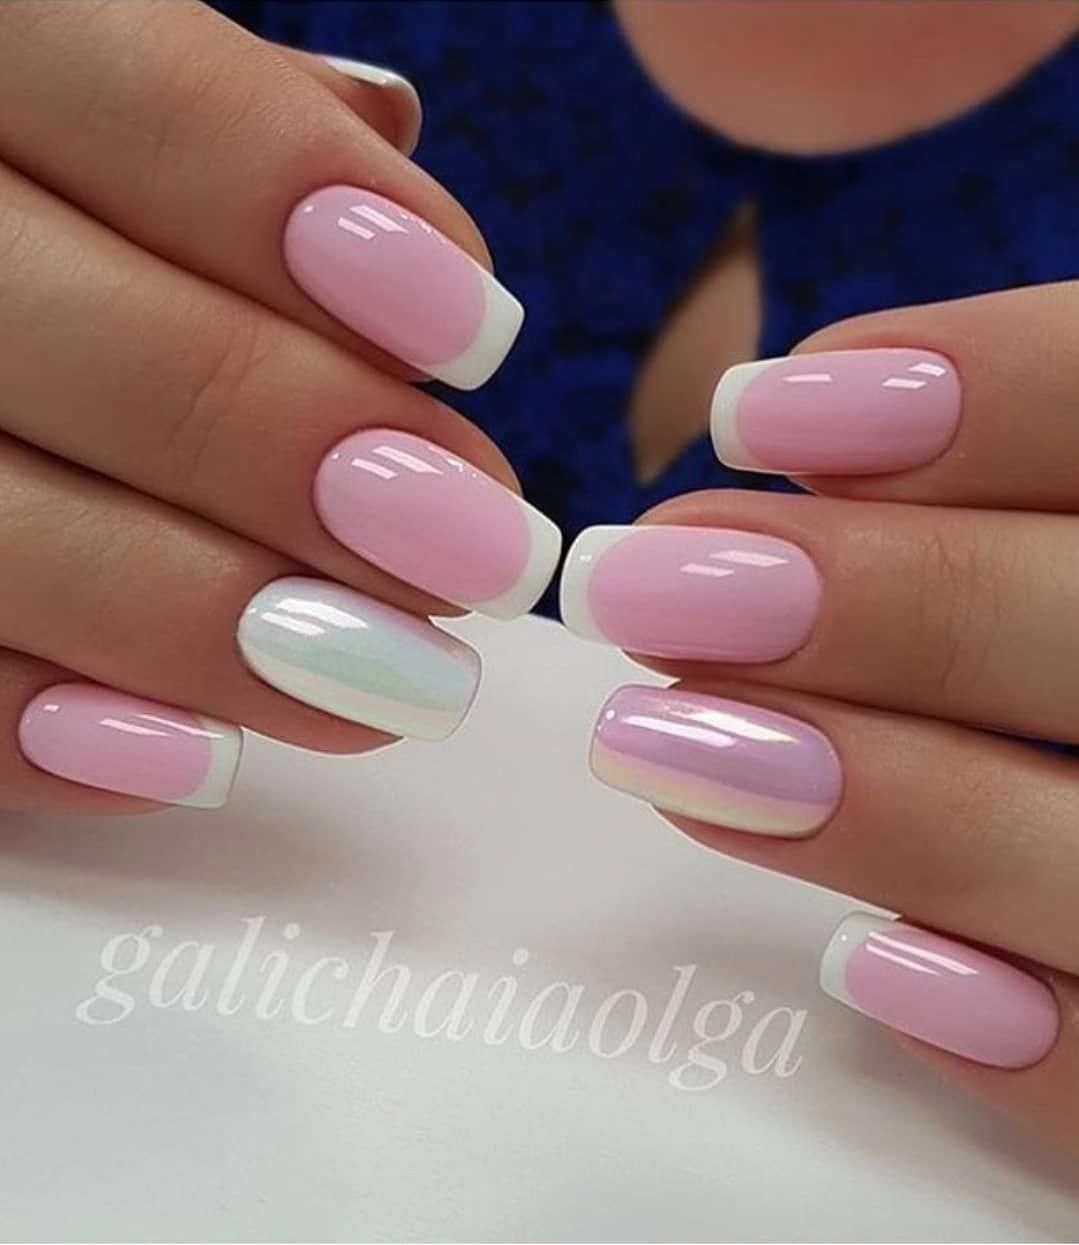 110 Nail Art Designs And Ideas 2020 In 2020 Fresh Nails Designs Nail Designs Manicure